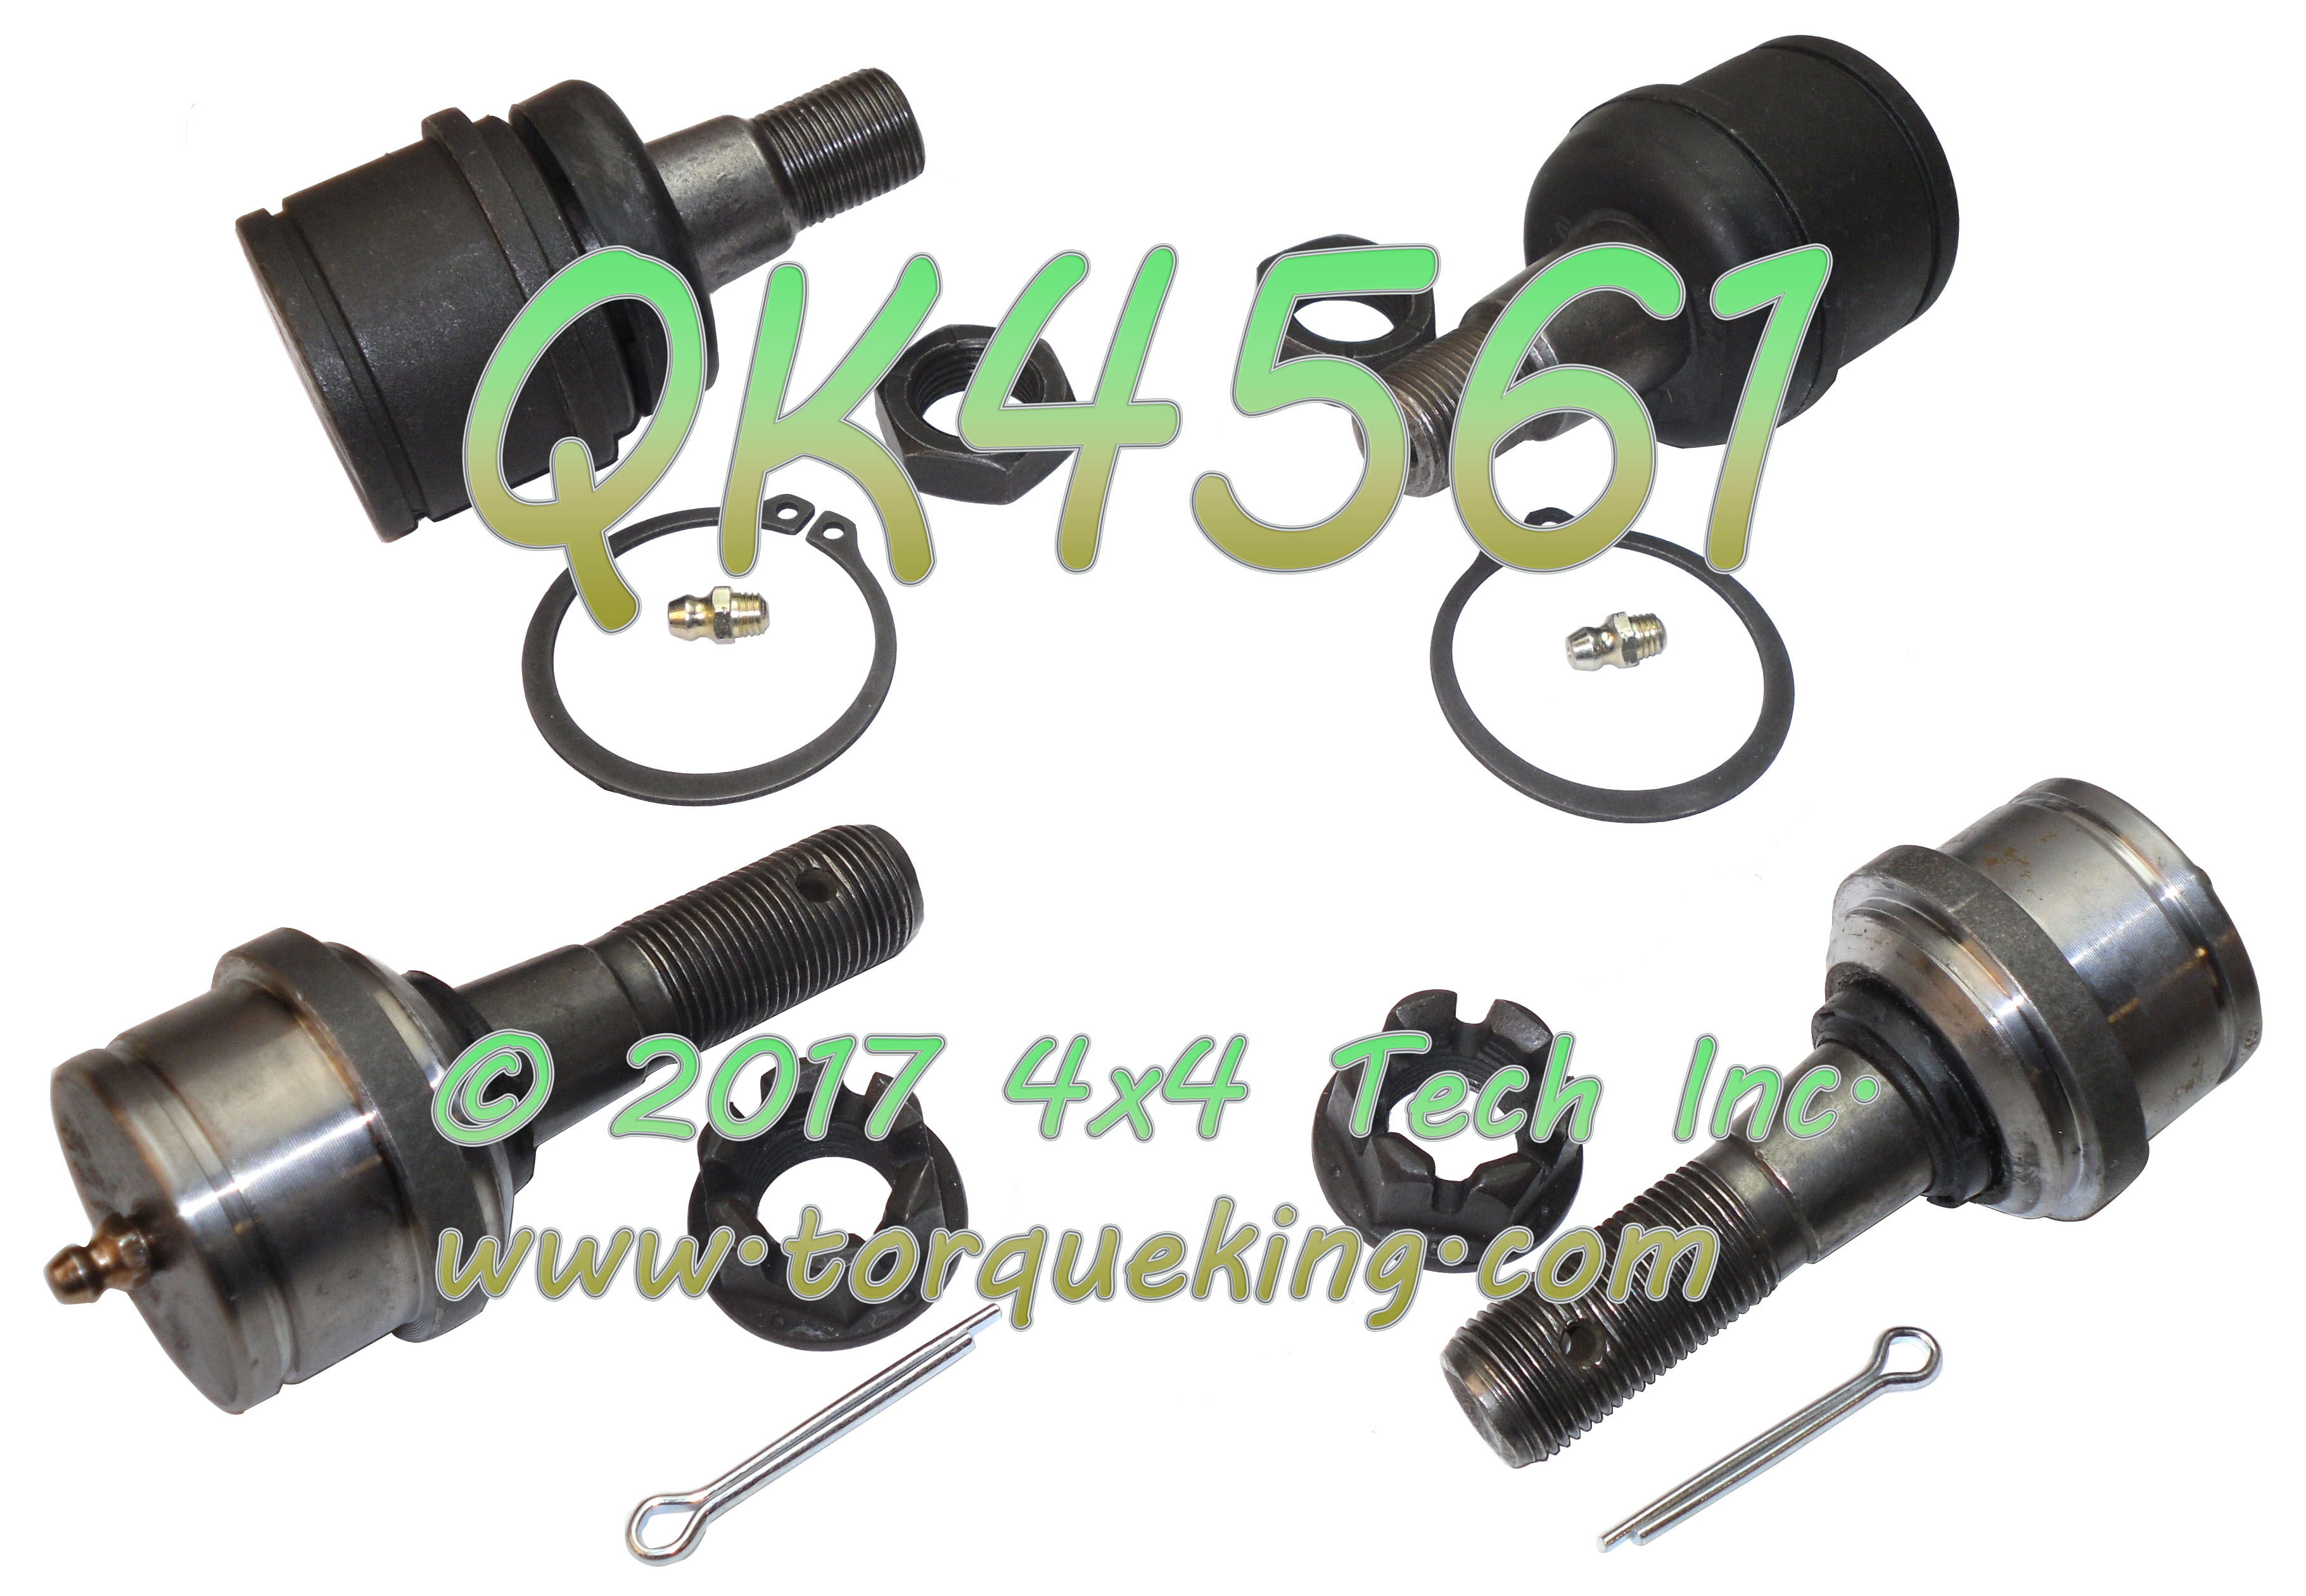 Qk Greaseable Ball Joint Kit For Ford Dana  Ifs Front Axles Includes  Upper And  Lower Greaseable Ball Joints With Hardware For All   Ford